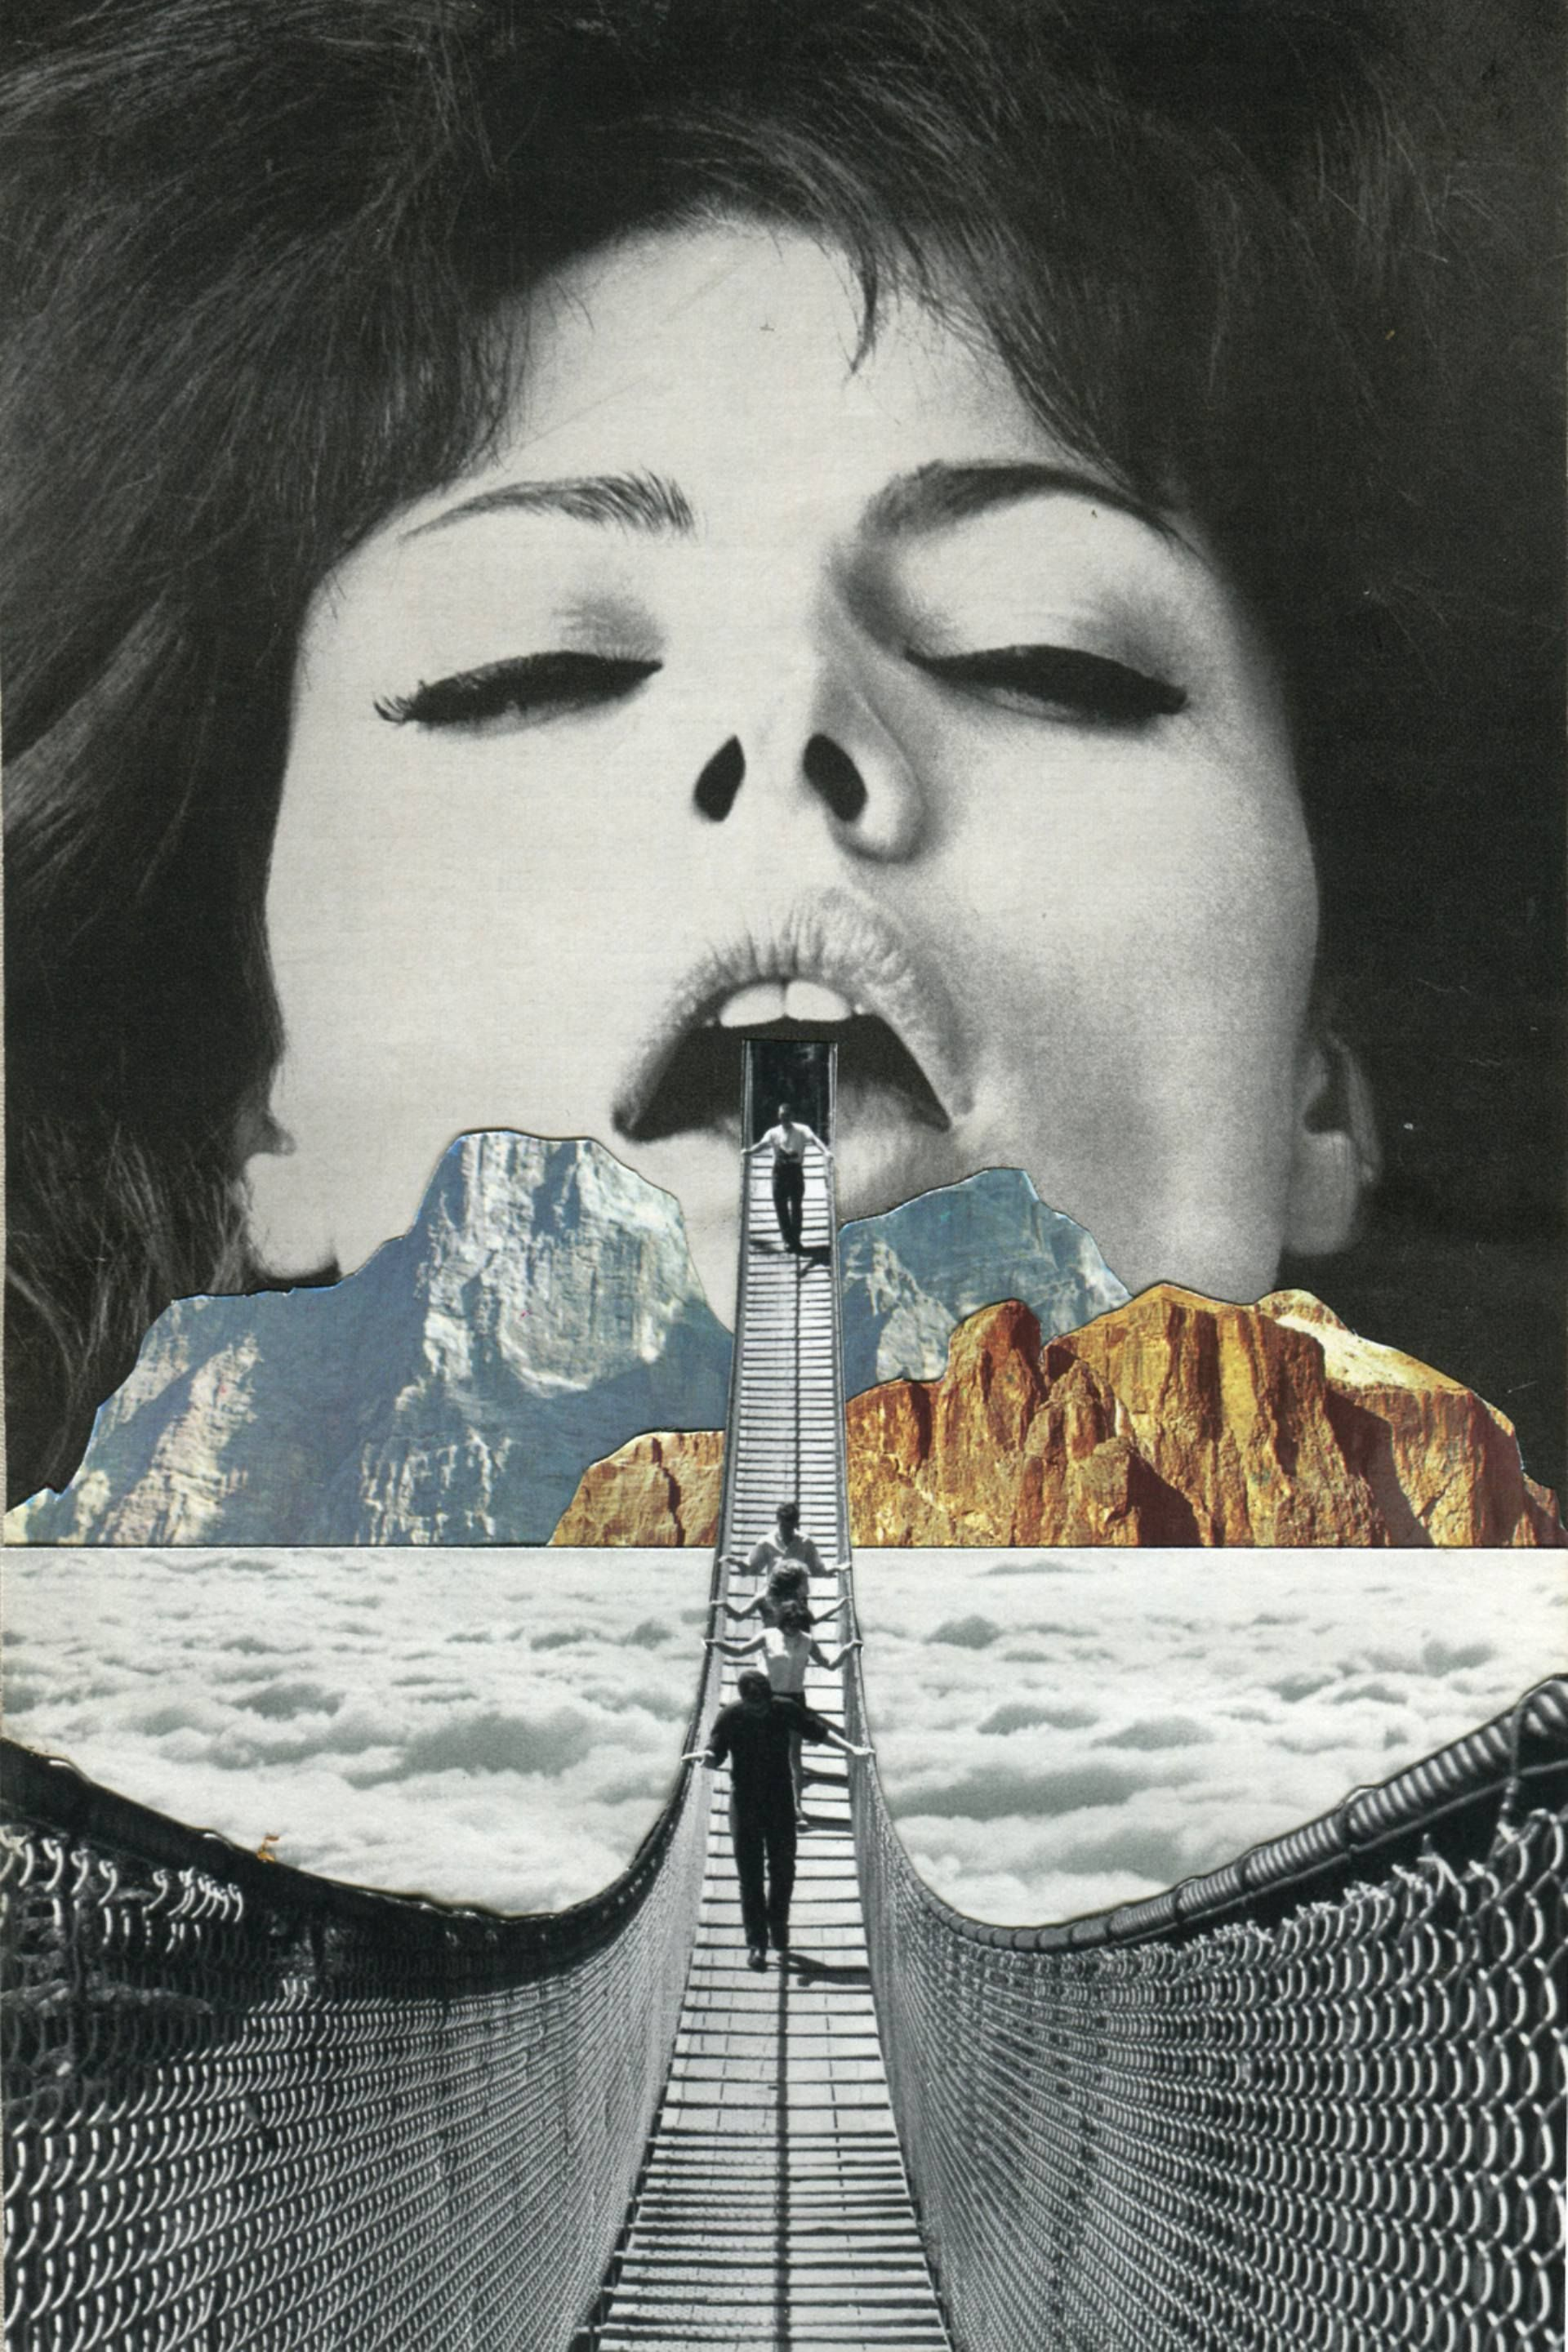 Sammy Slabbinck. Arte de collage, Fotomontaje, Collages